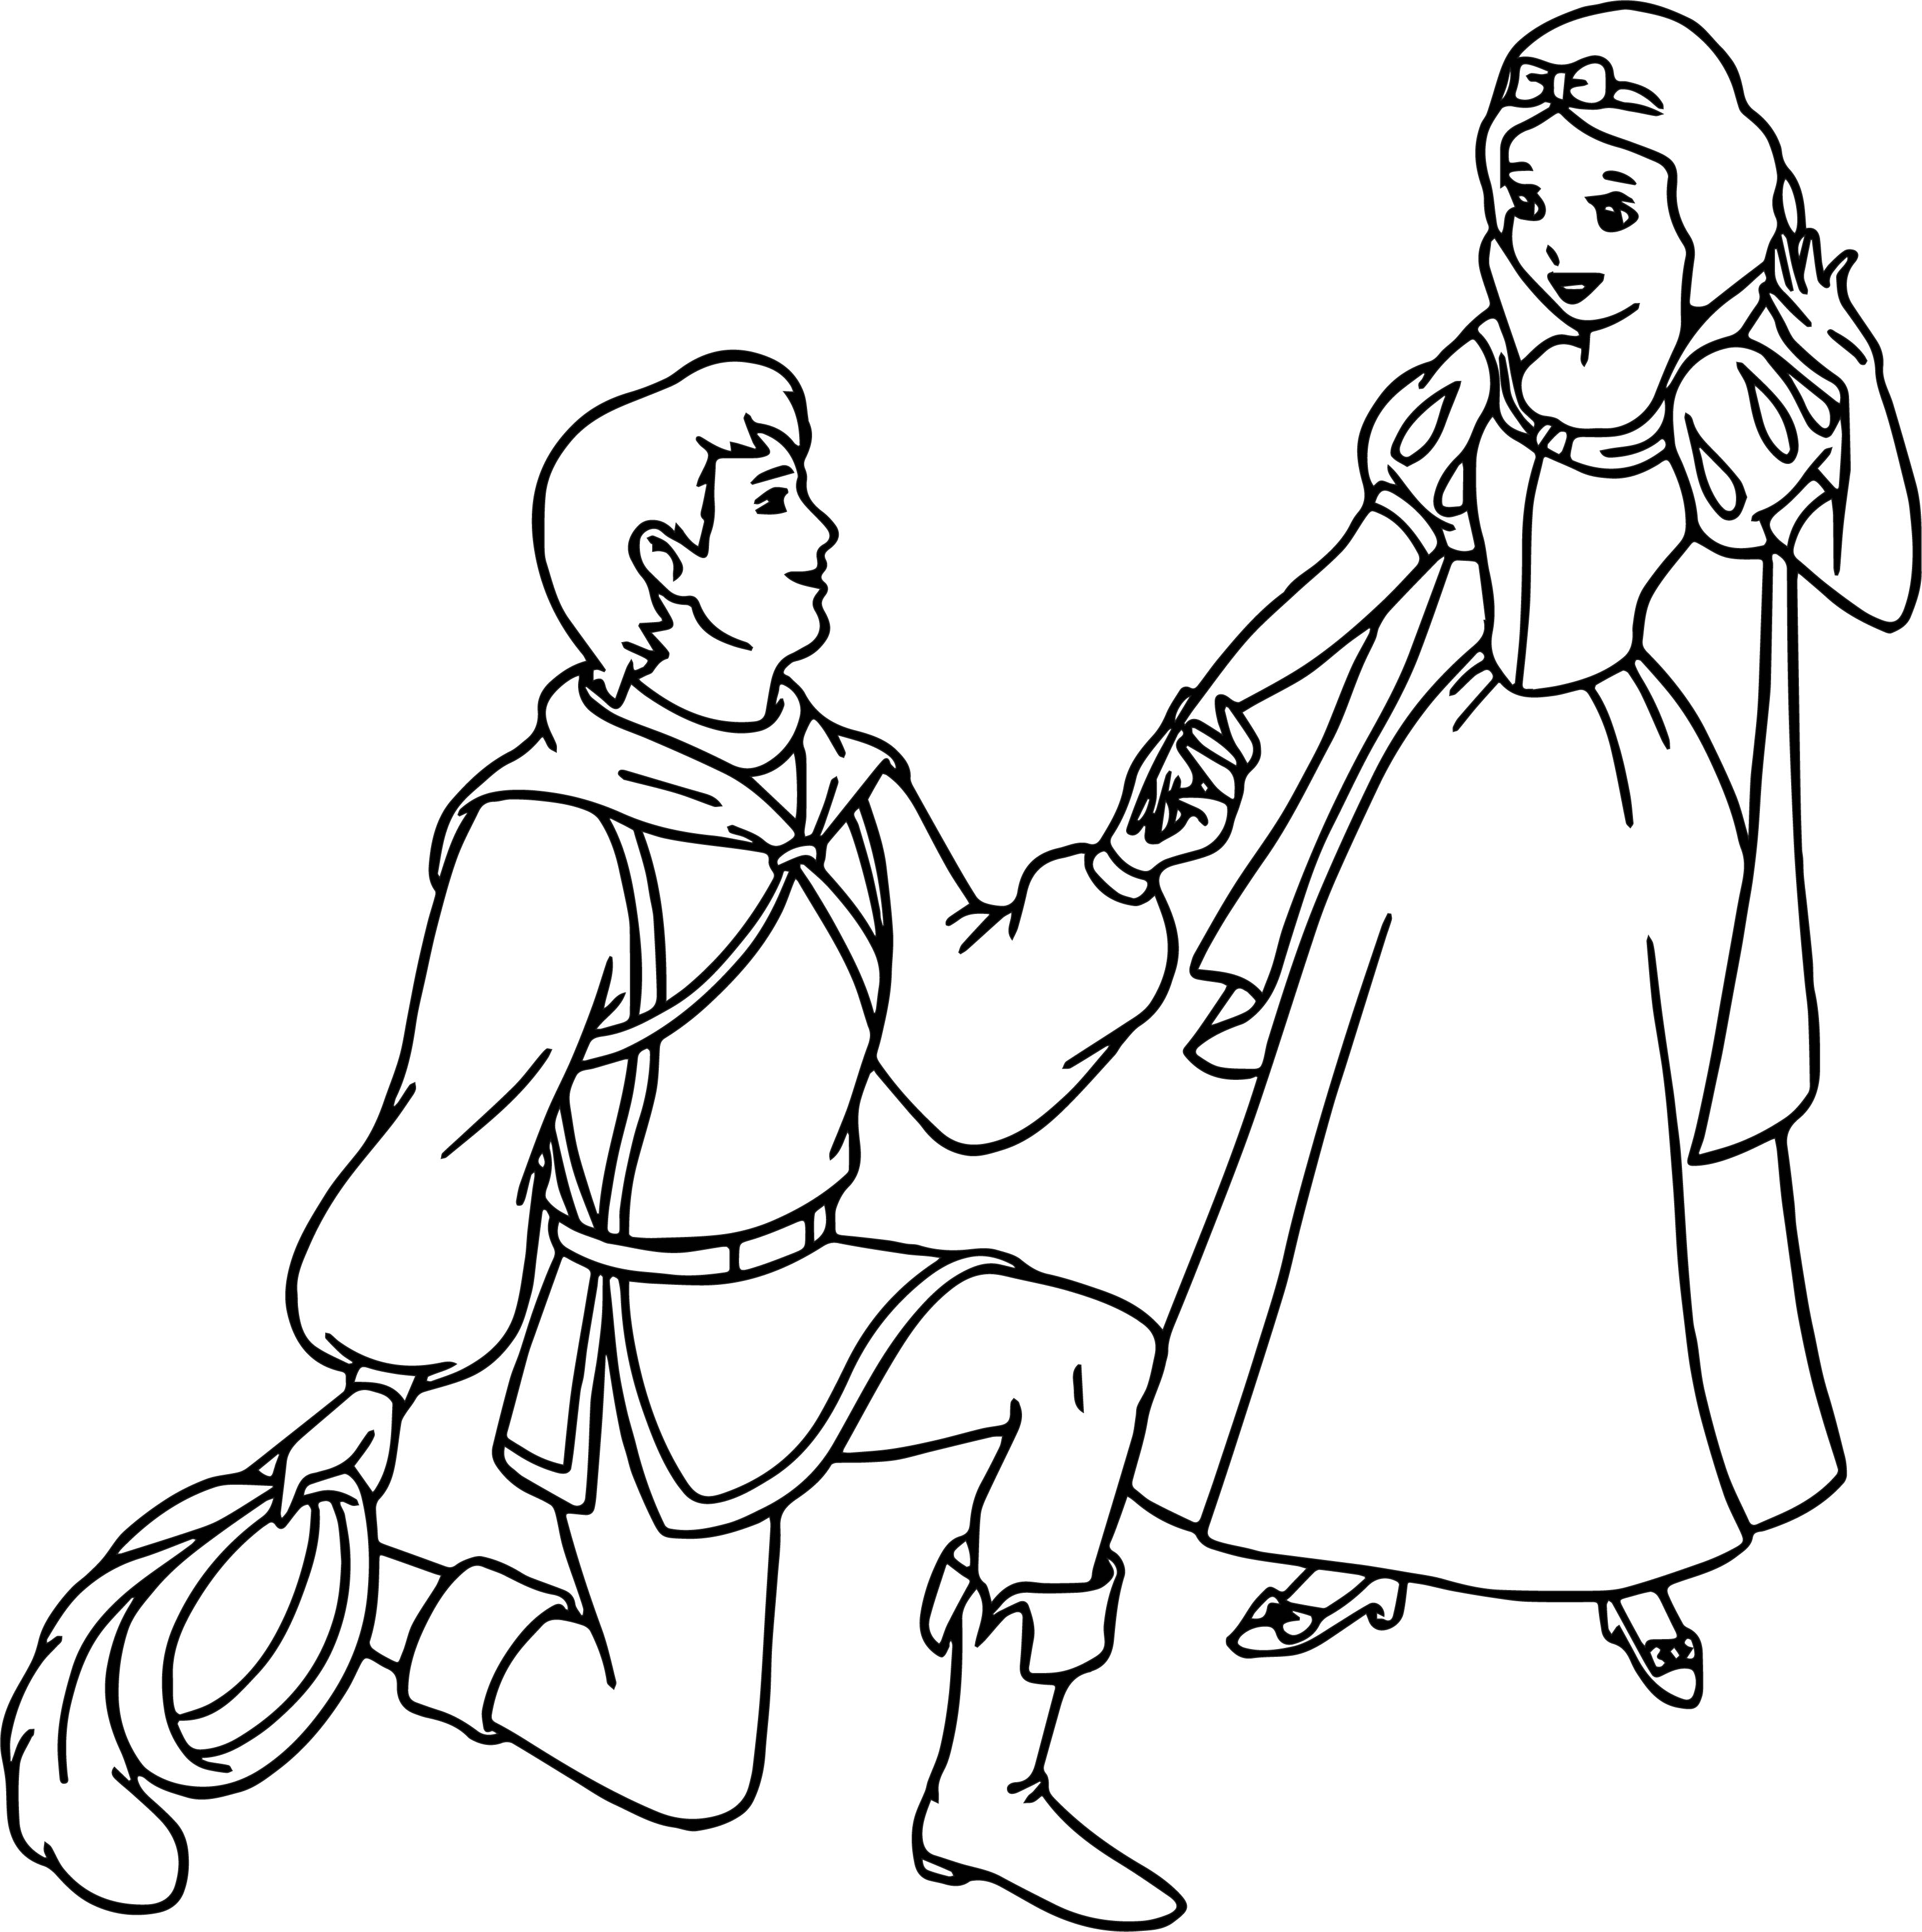 snow white and the prince meeting coloring page wecoloringpage